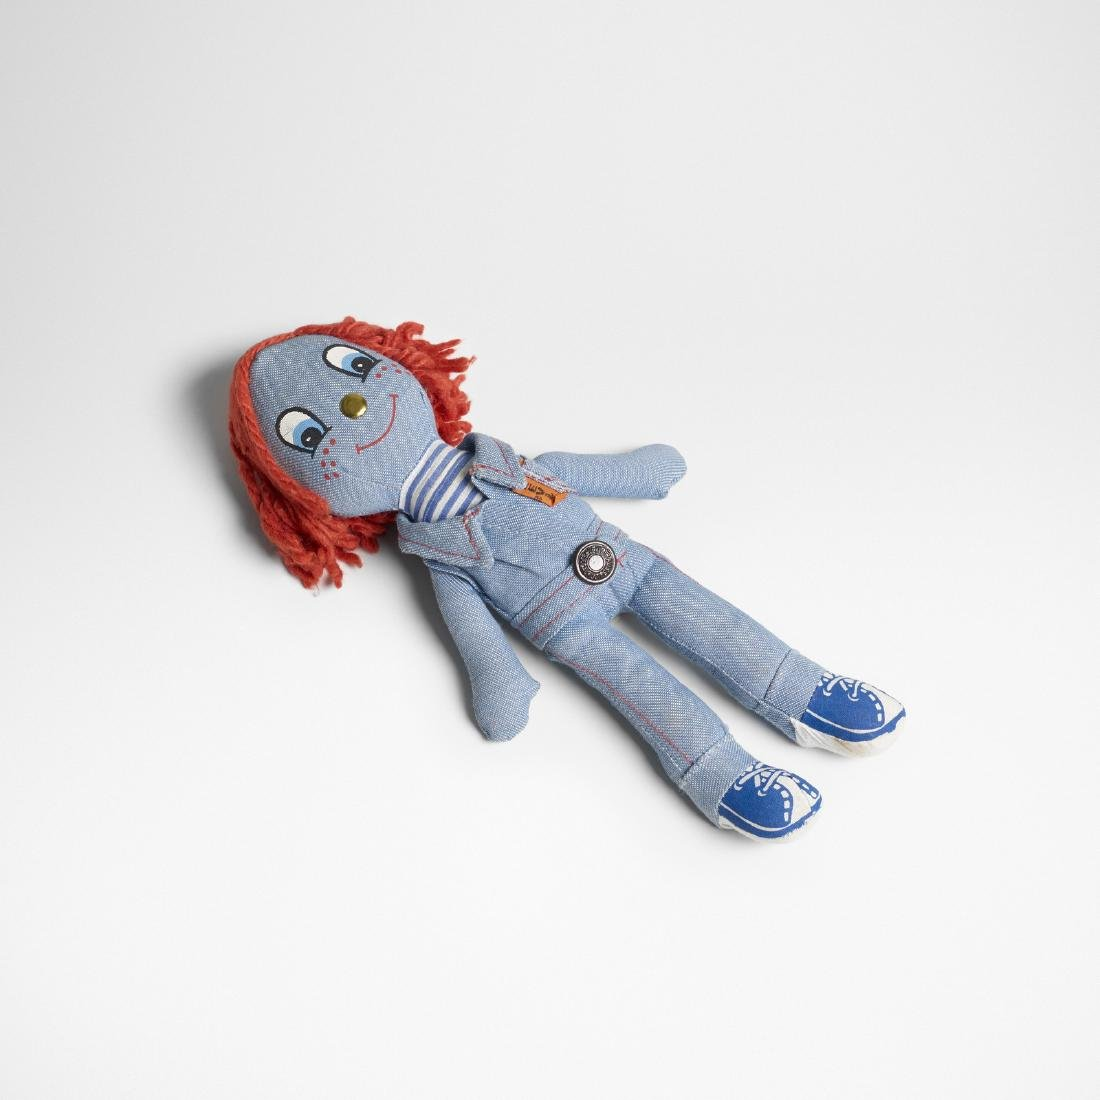 Levi's, Knickerbocker rag doll